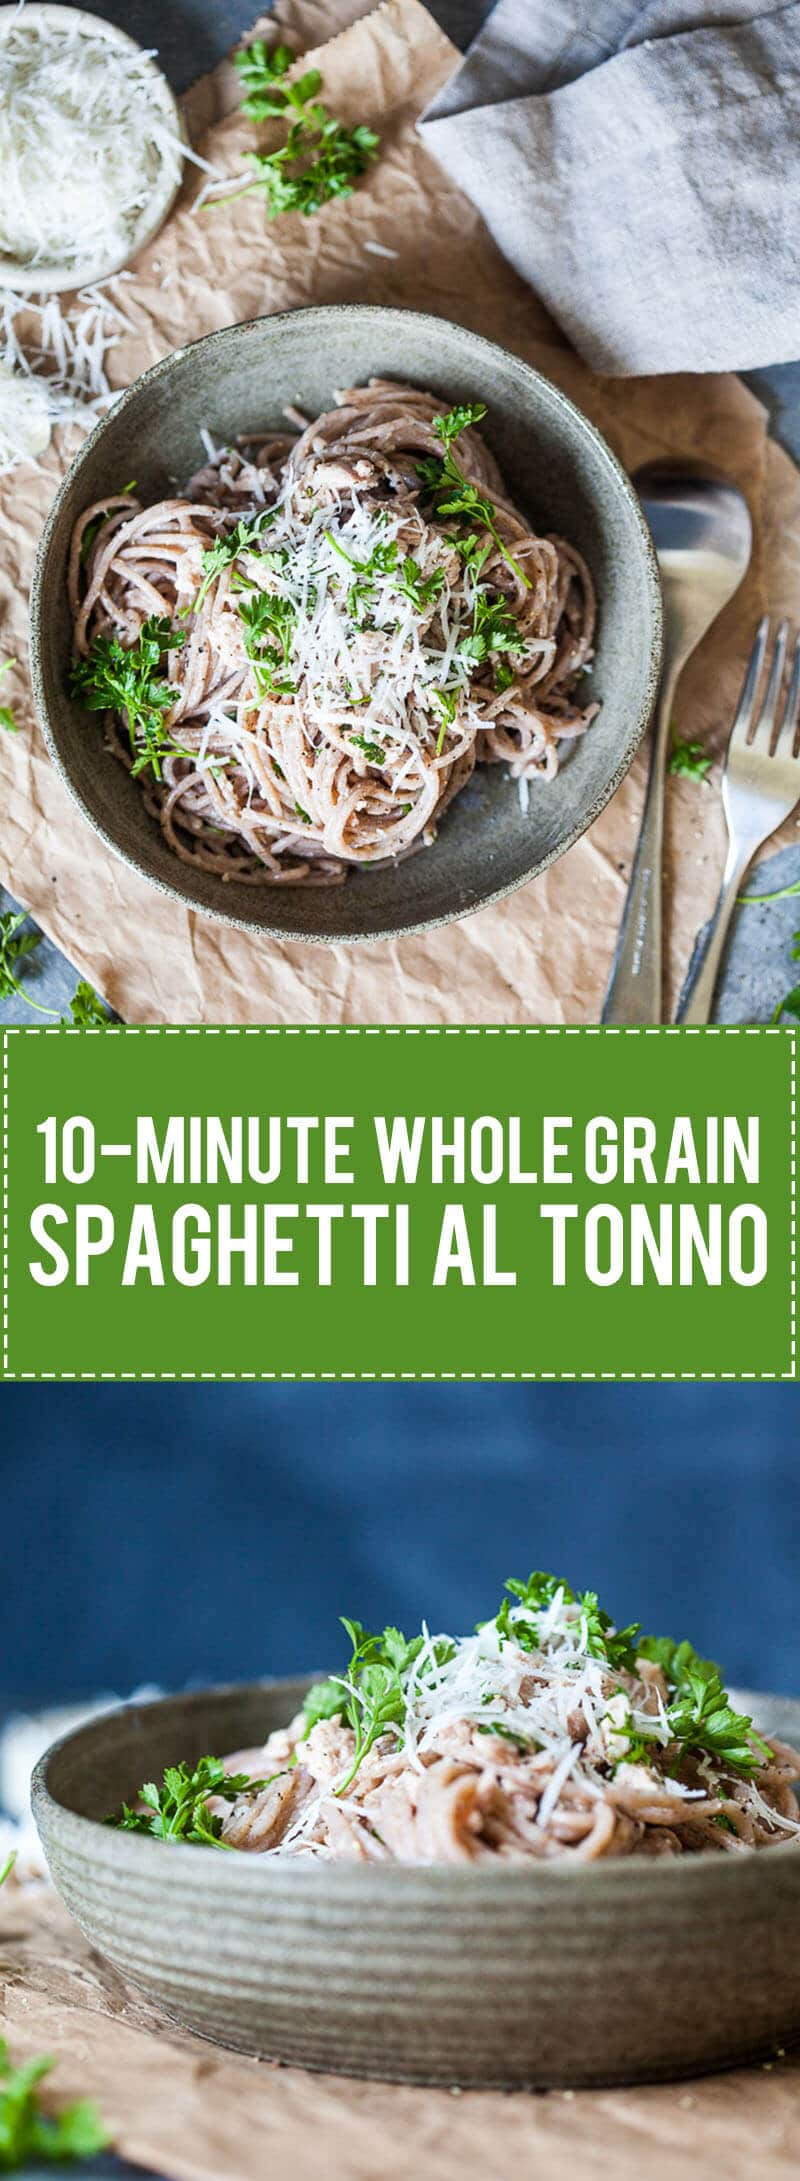 This Whole Grain Spaghetti al Tonno takes literally 10 minutes to make! | www.vibrantplate.com